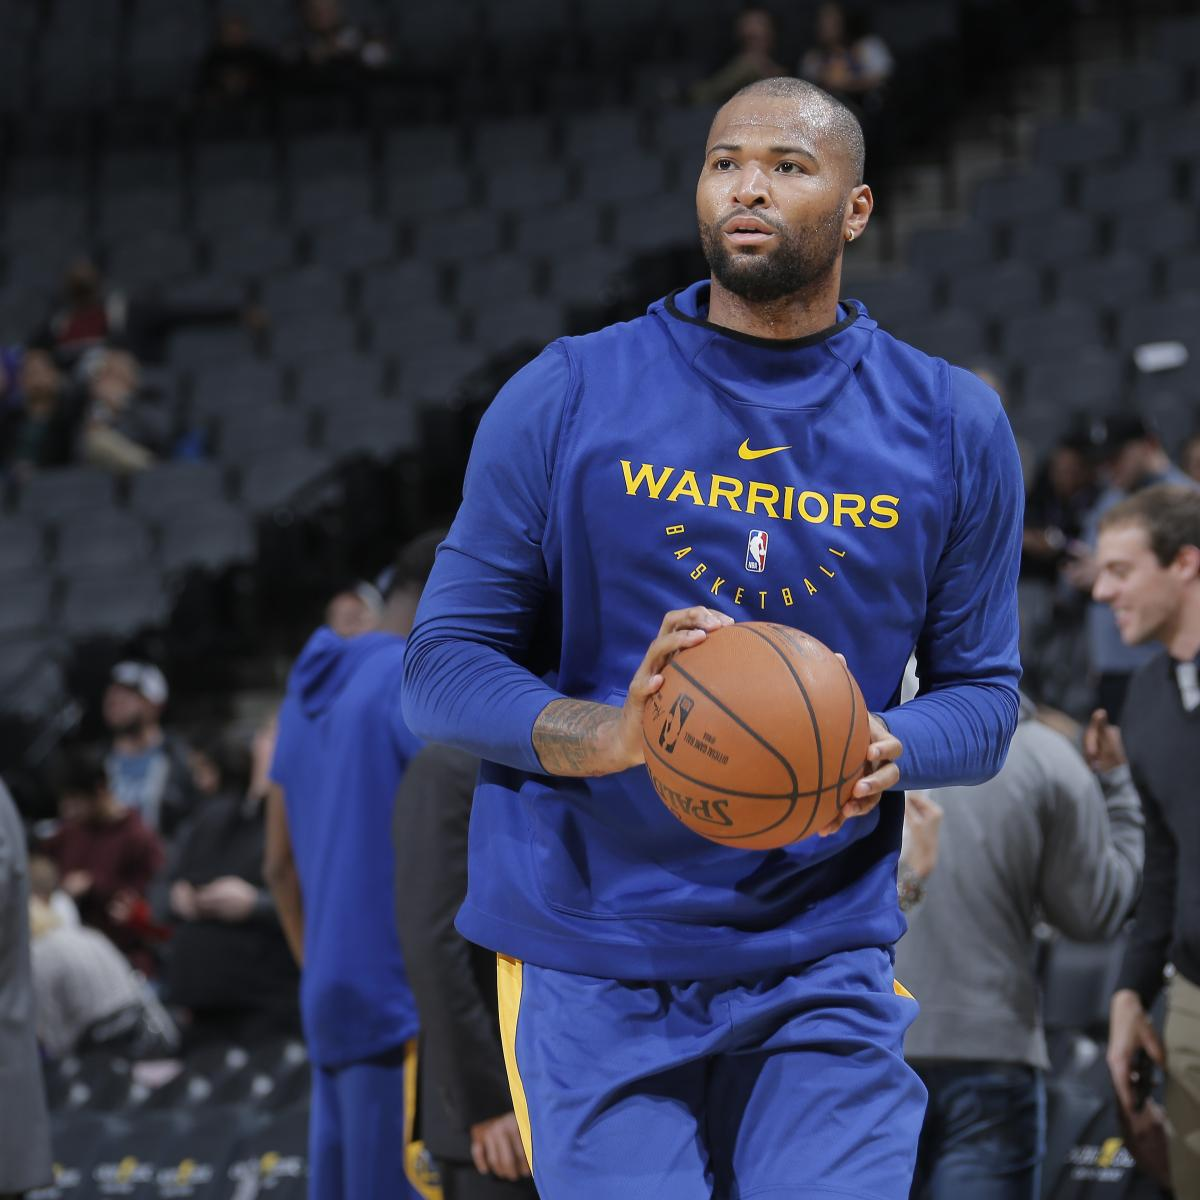 Warriors Come Out To Play Bleacher Report: Warriors News: DeMarcus Cousins Discusses Challenges Of